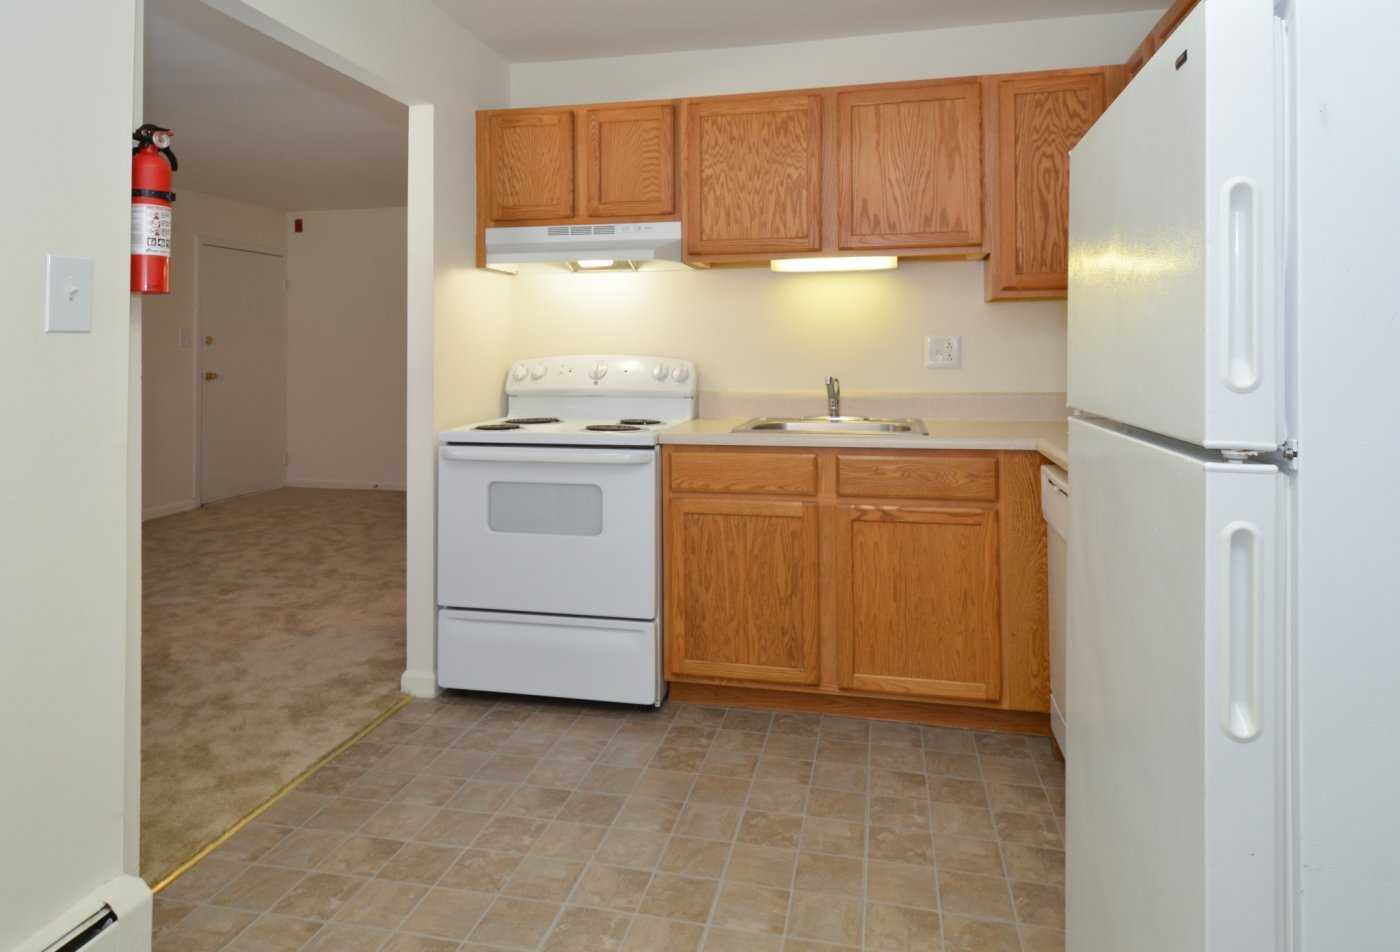 Modern Kitchen | Boothwyn PA Apartment For Rent | Boothwyn Court Apartments